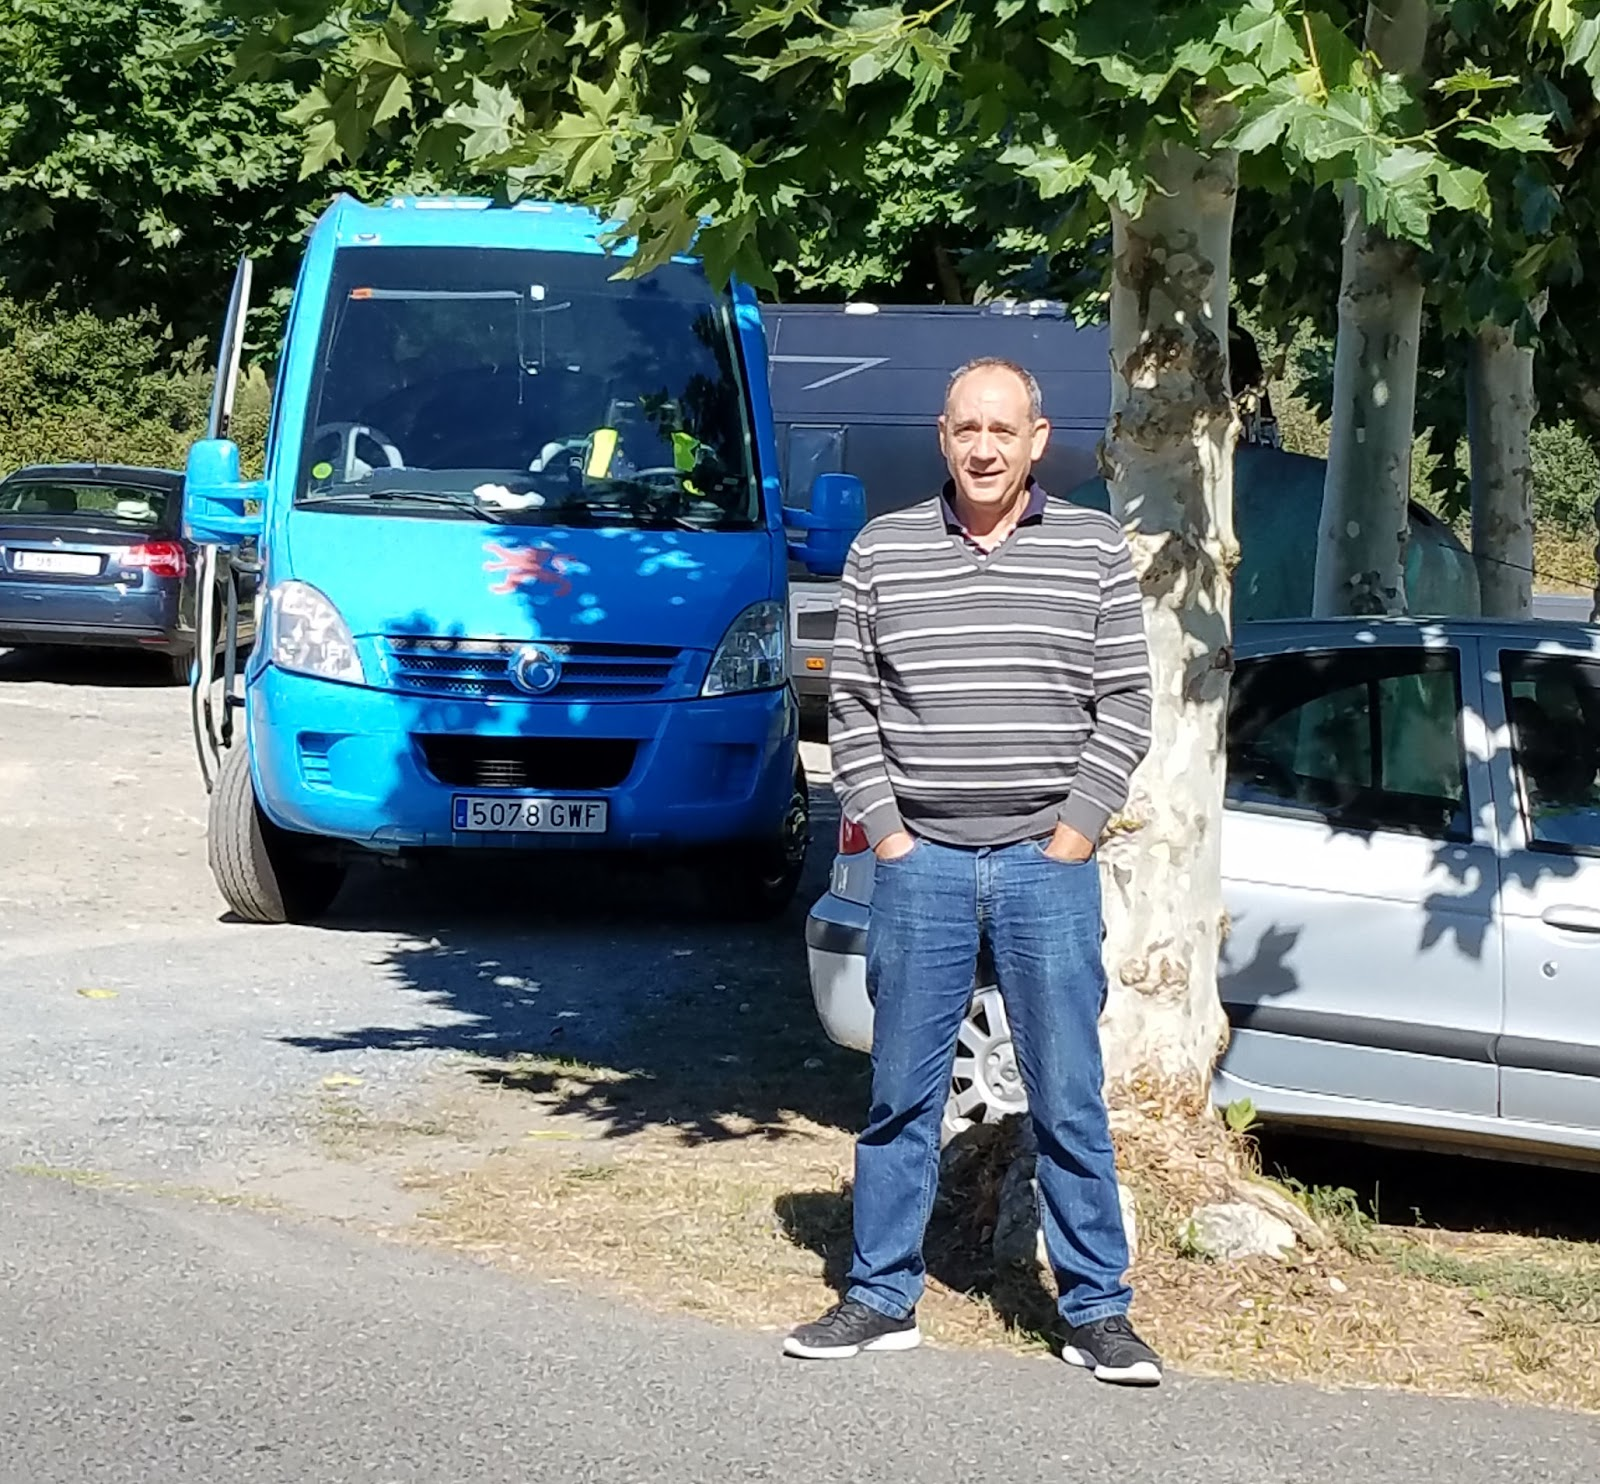 It was never difficult to find our fearless coachman Javier and our bright blue bus at the various checkpoints along the way.